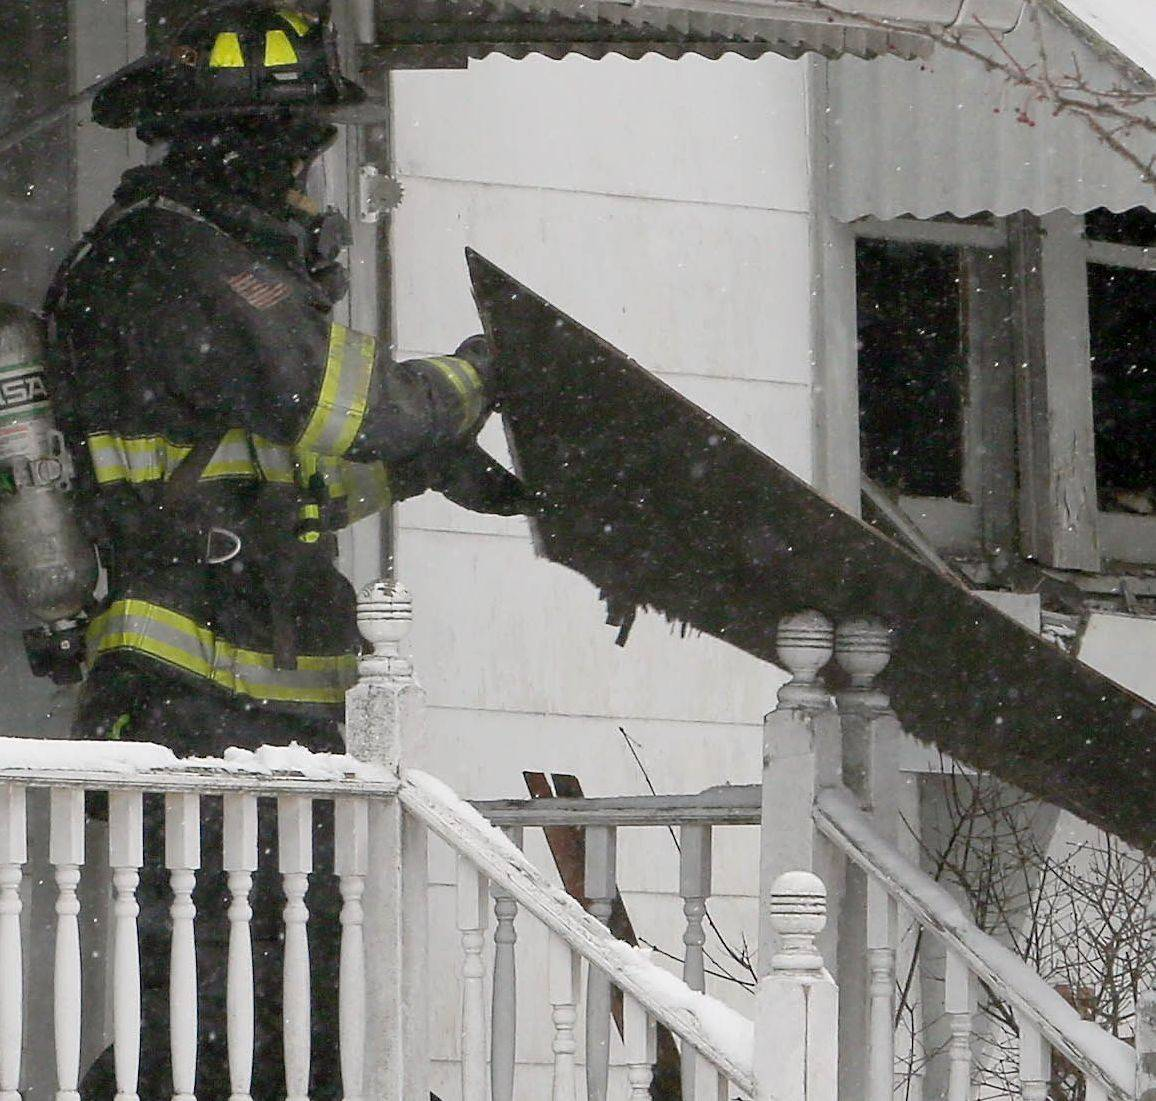 Firefighters work at the scene of a house fire that killed a woman Friday in West Chicago.